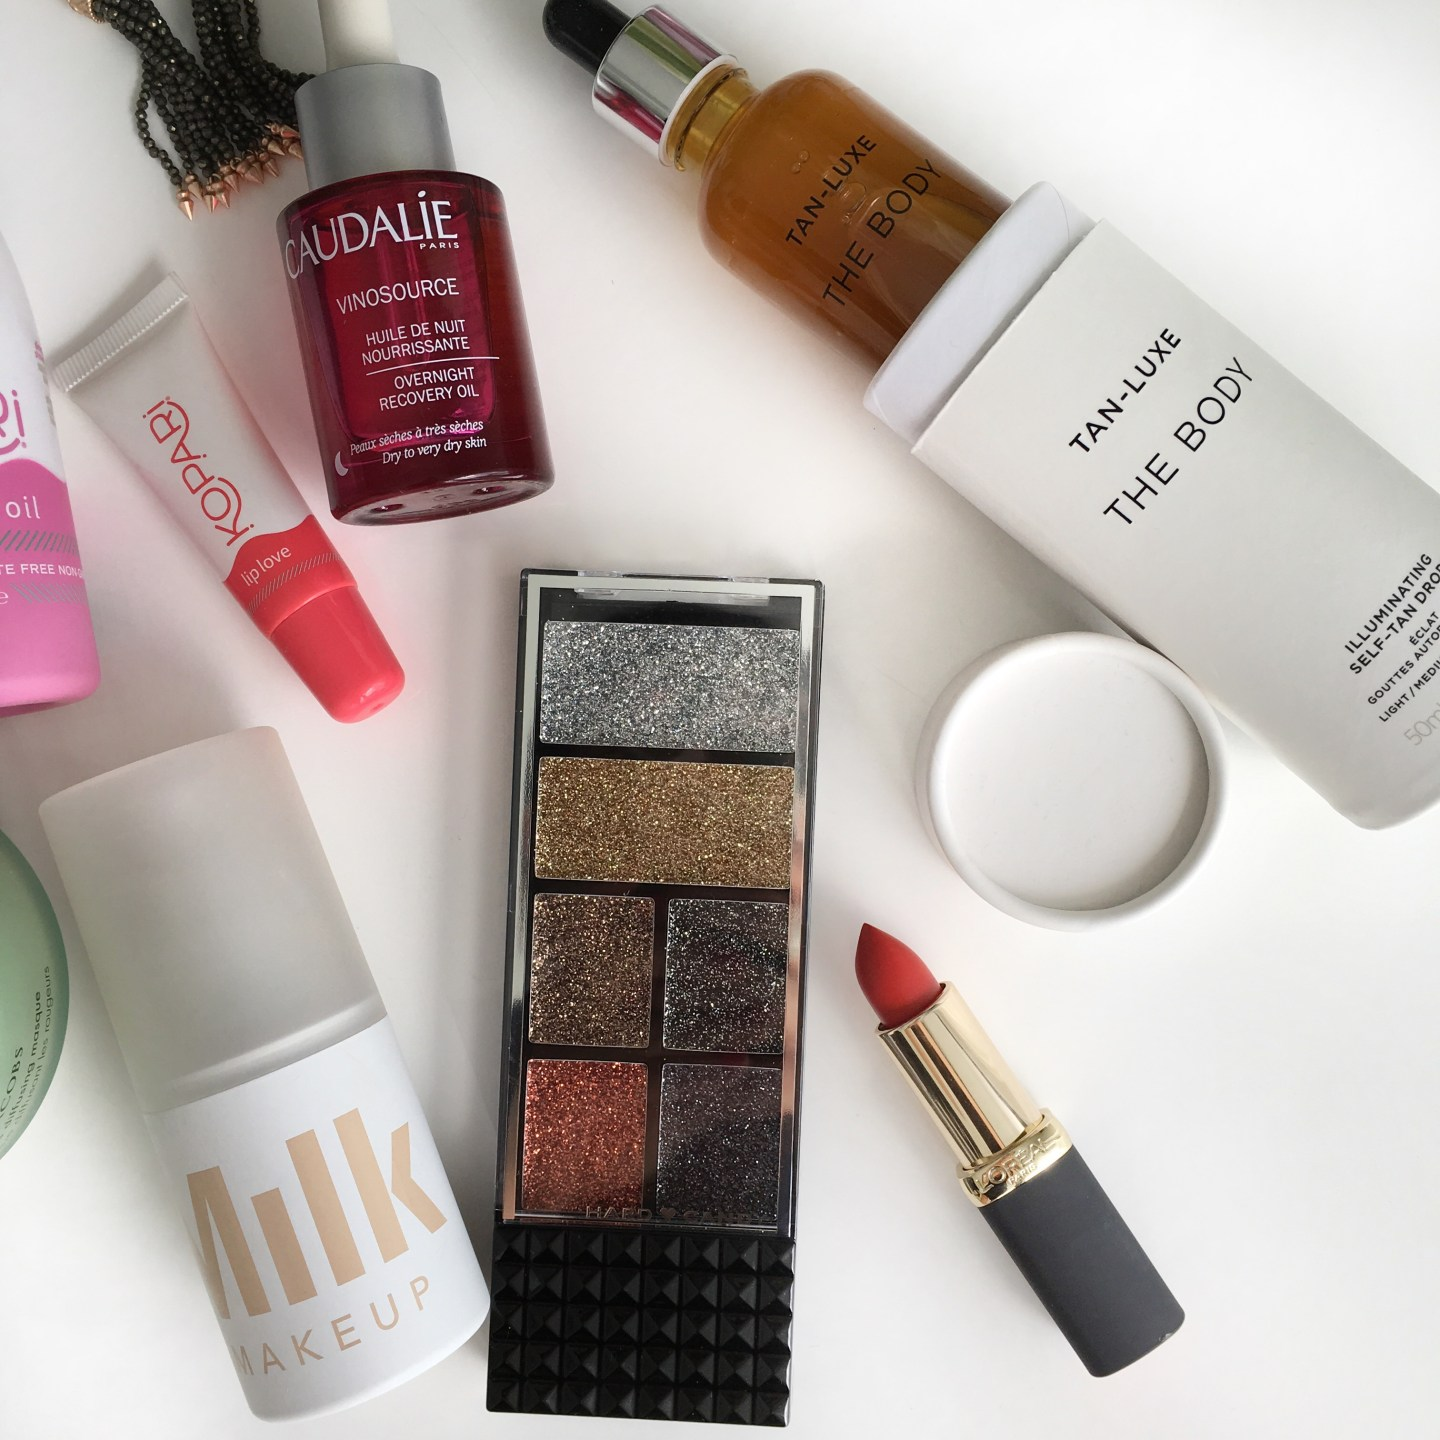 Miami Beauty Breakdown for Fall and Winter Skin Survival